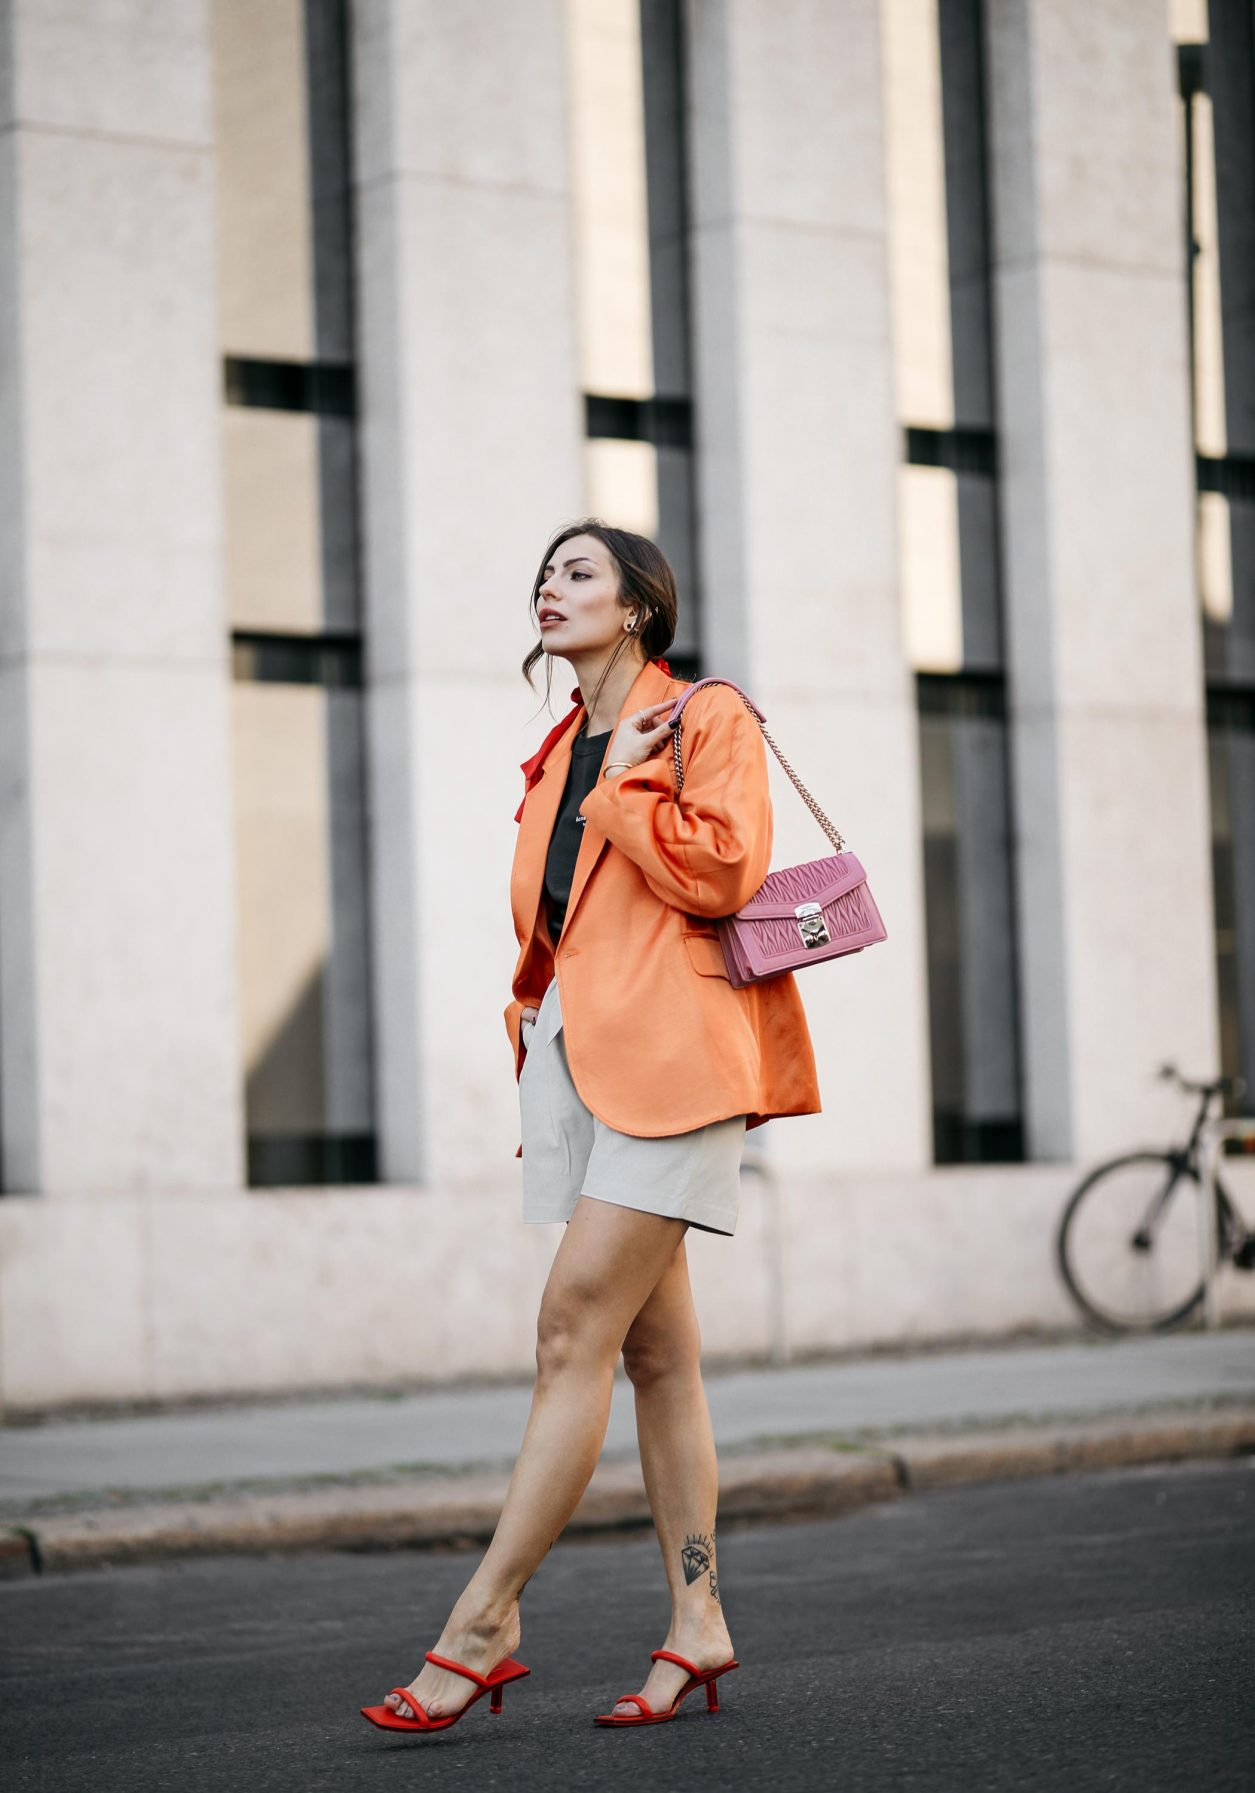 Summer Streetstyle Look by Masha Sedgwick | Photographer: Jeremy Moeller | Summer style trends & outfit inspiration, fashion blogger from Berlin, Germany | Wearing orange Baum Pferdgarten Blazer, graphic grey Acne Studios logo shirt, white leather Copenhagen Muse paperboy shorts, pink Miu Miu shoulder bag, red straps sandals by Charles & Keith | Hair style: messy ponytail